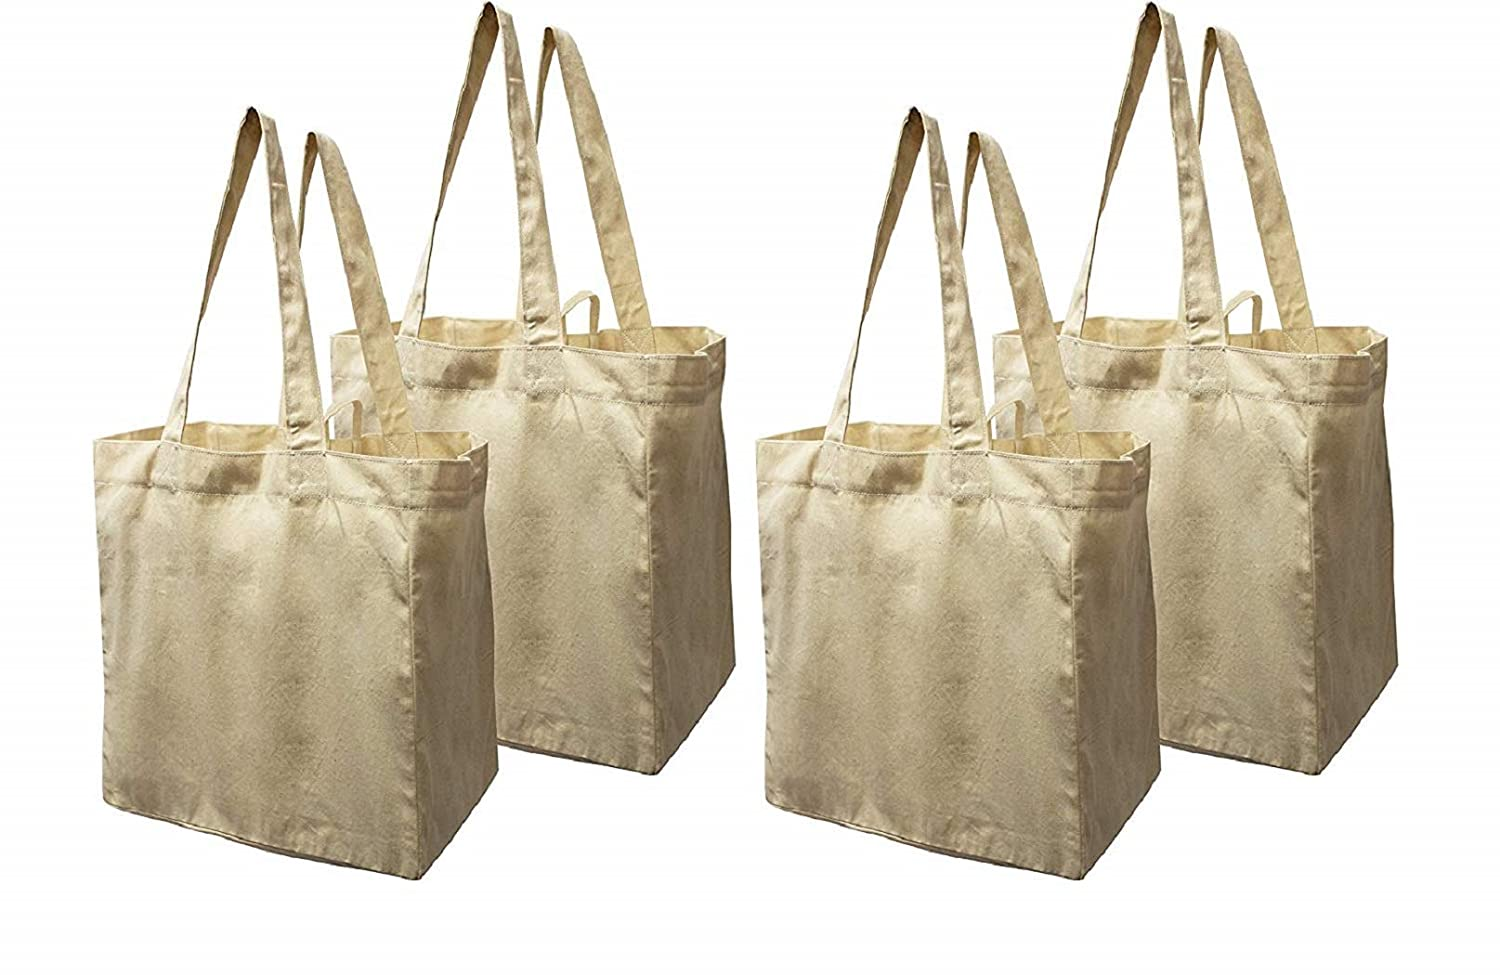 a7de60d3879b07 Amazon.com: Earthwise Cotton Canvas Reusable Shopping Grocery Bag Tote (4  Pack) (Natural): Kitchen & Dining